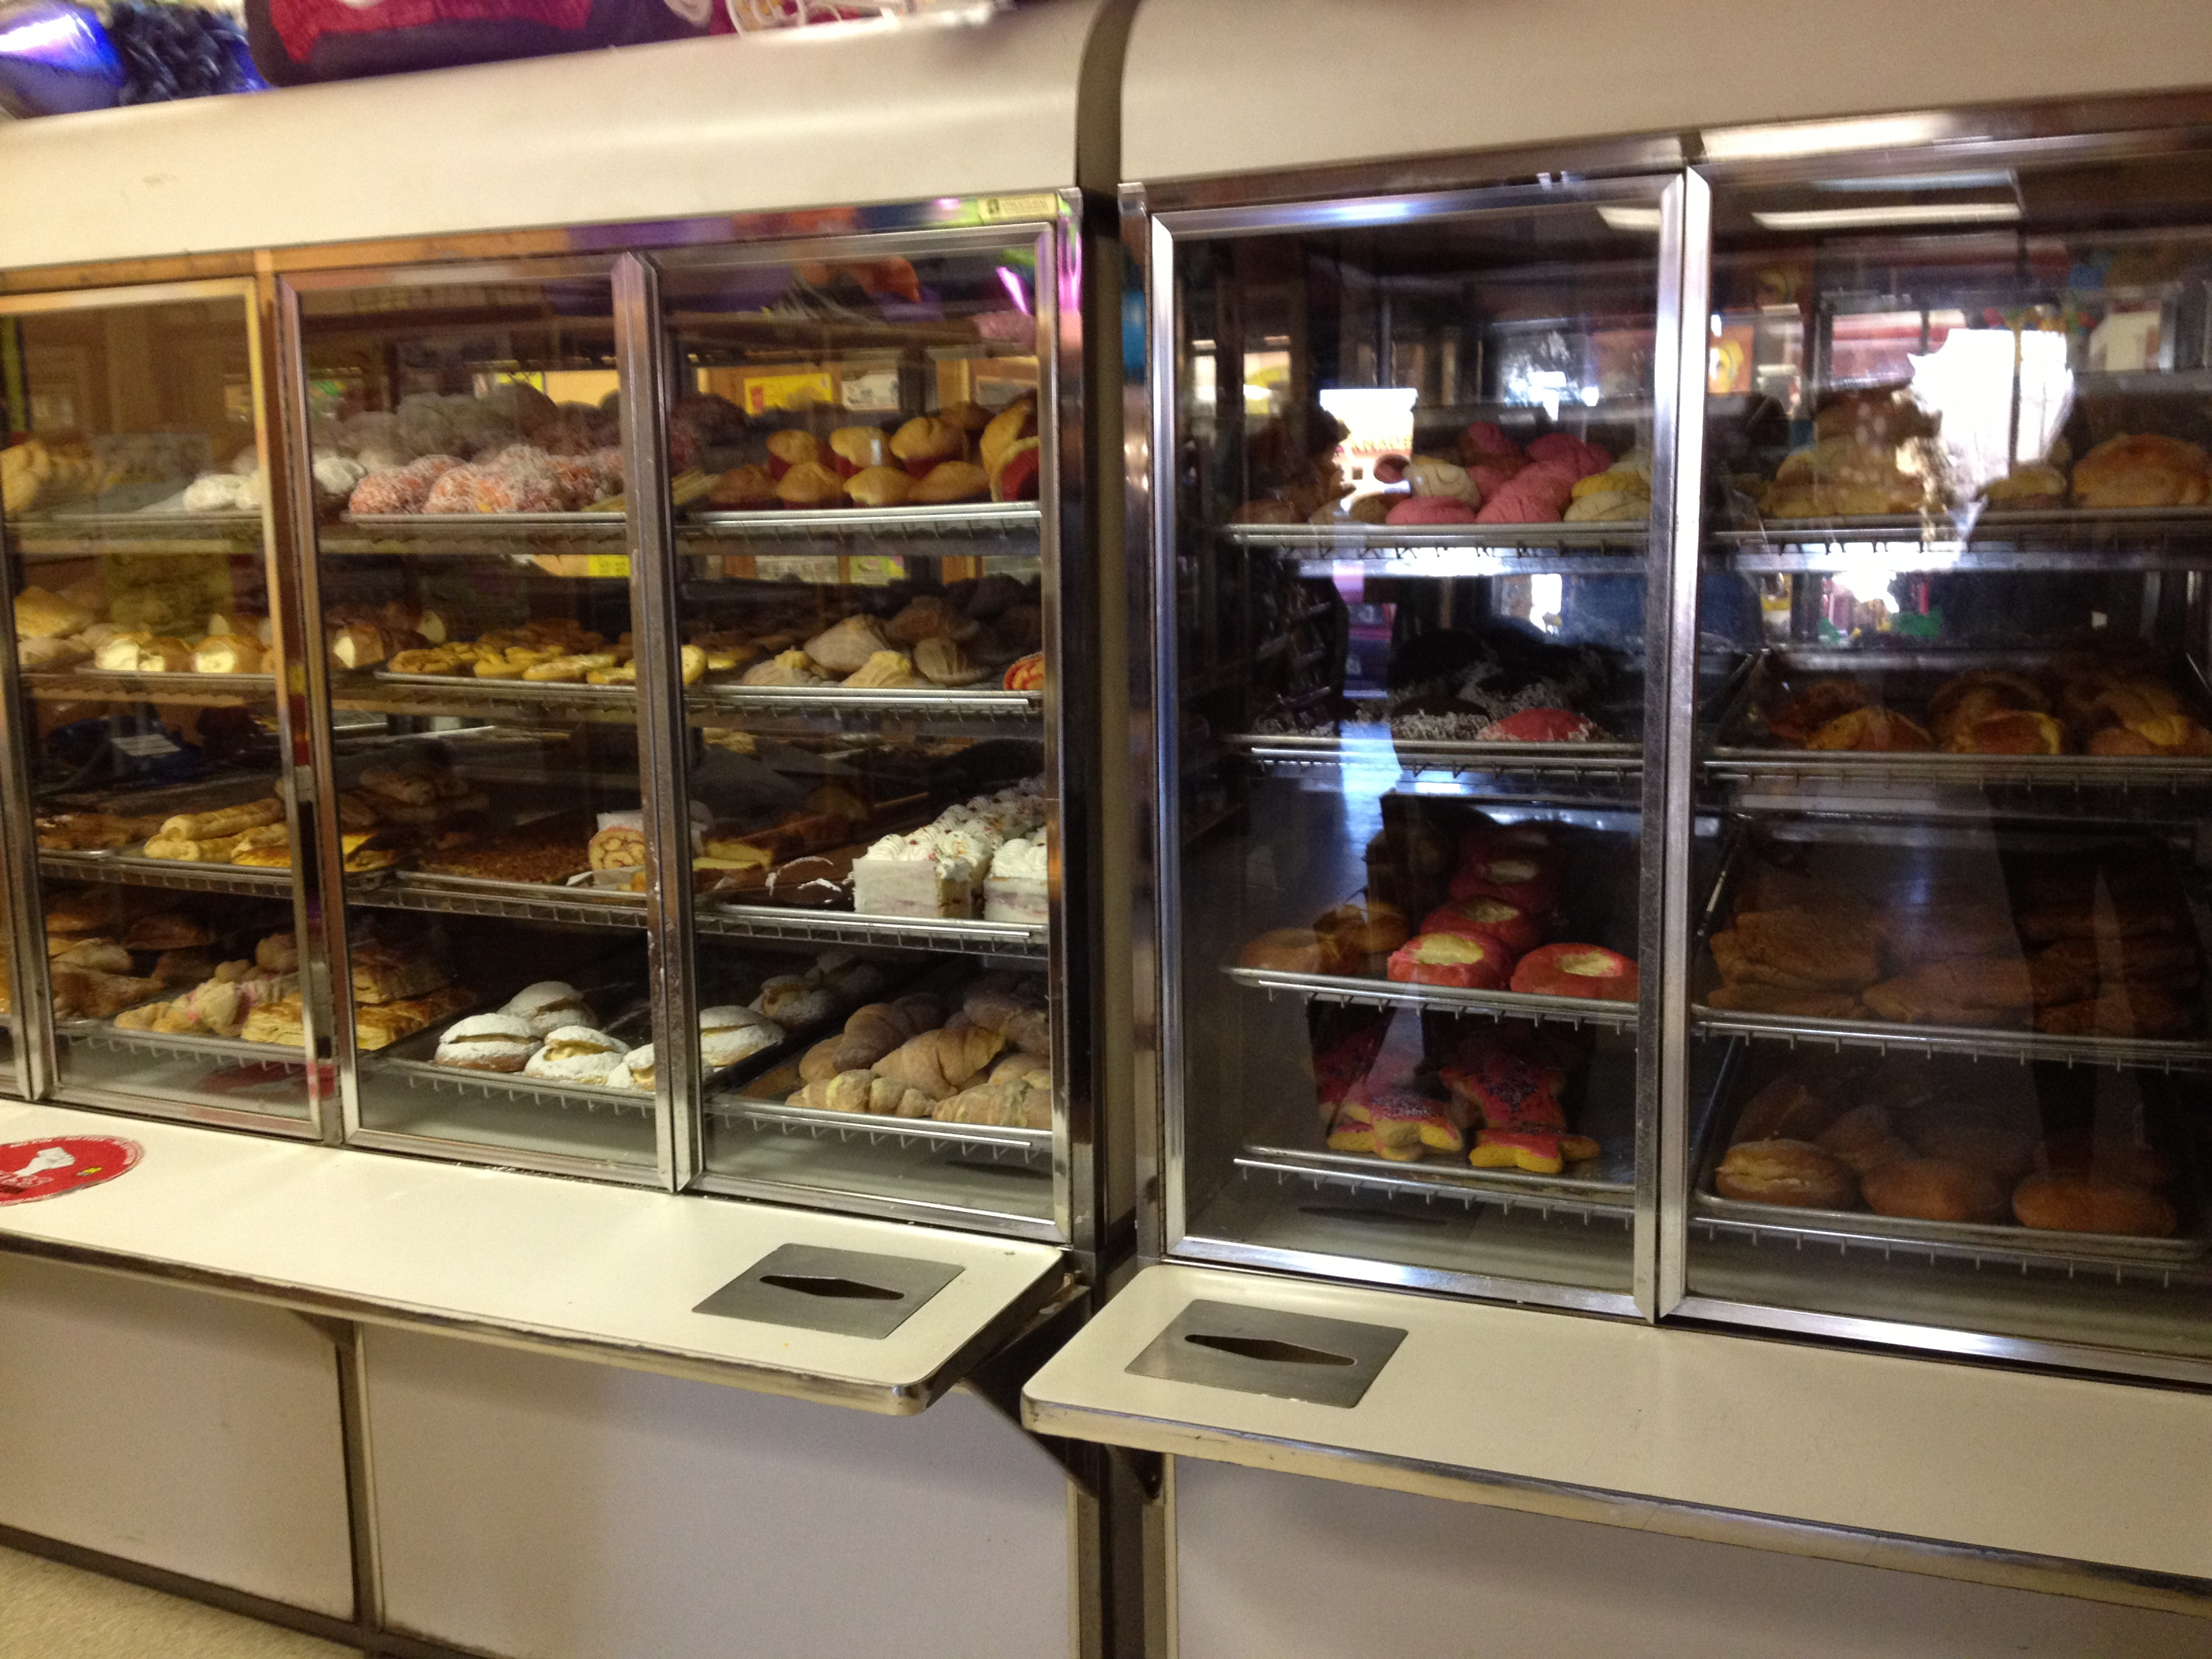 Racks of delicious baked goods at Panaderia